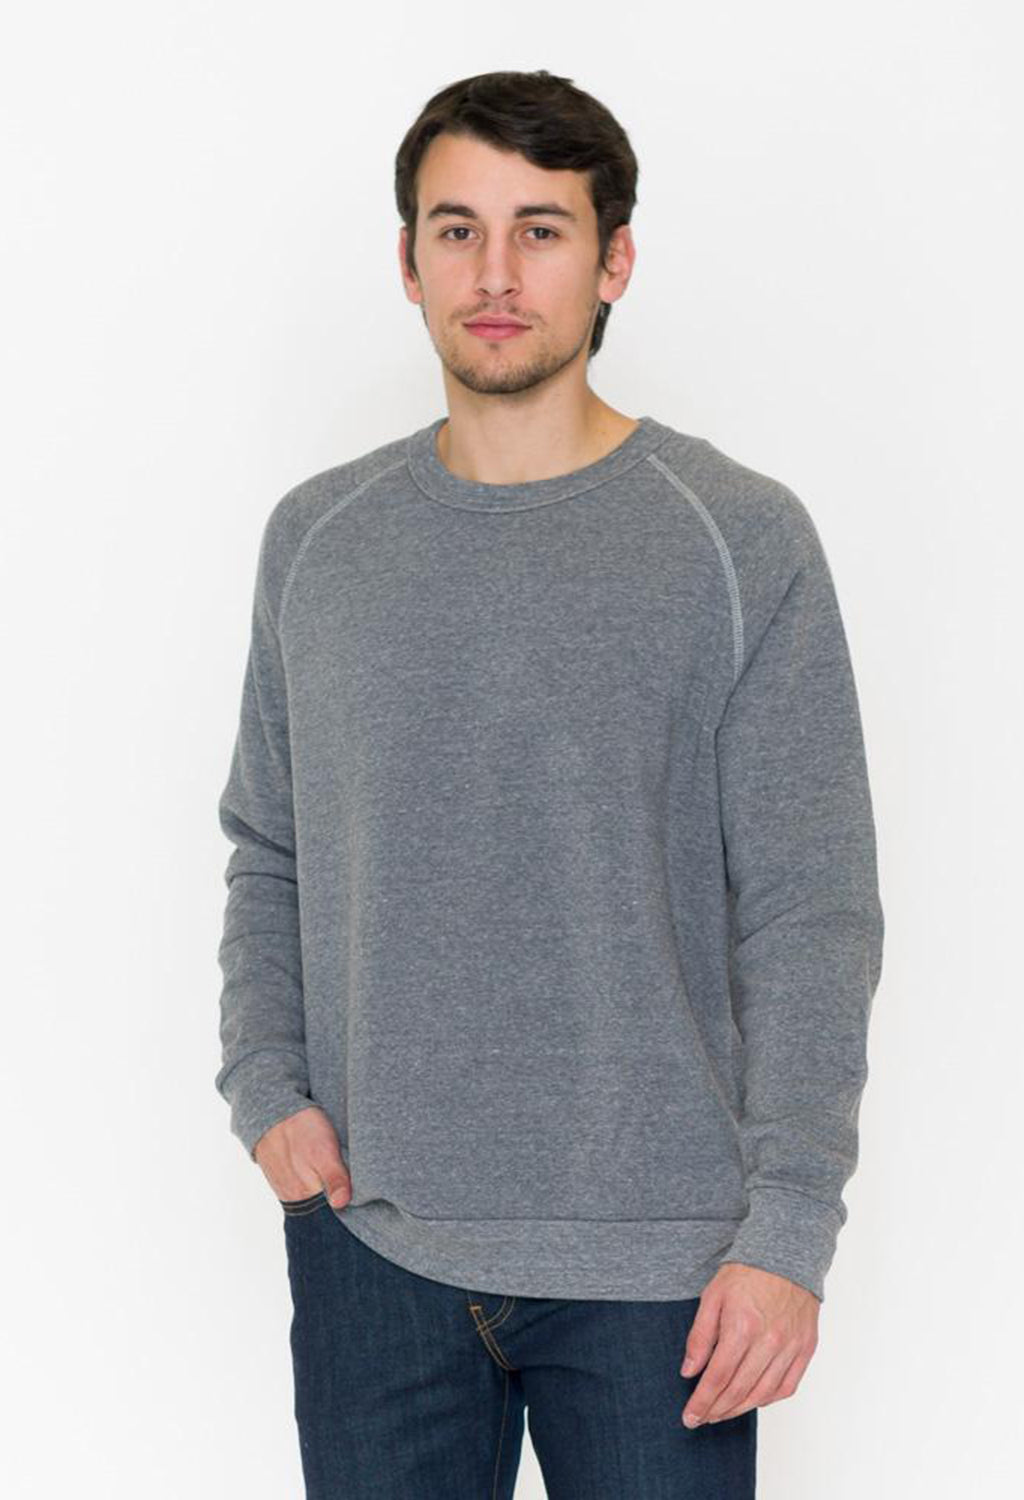 Alternative Champ Eco Fleece Sweatshirt - RUST & Co.